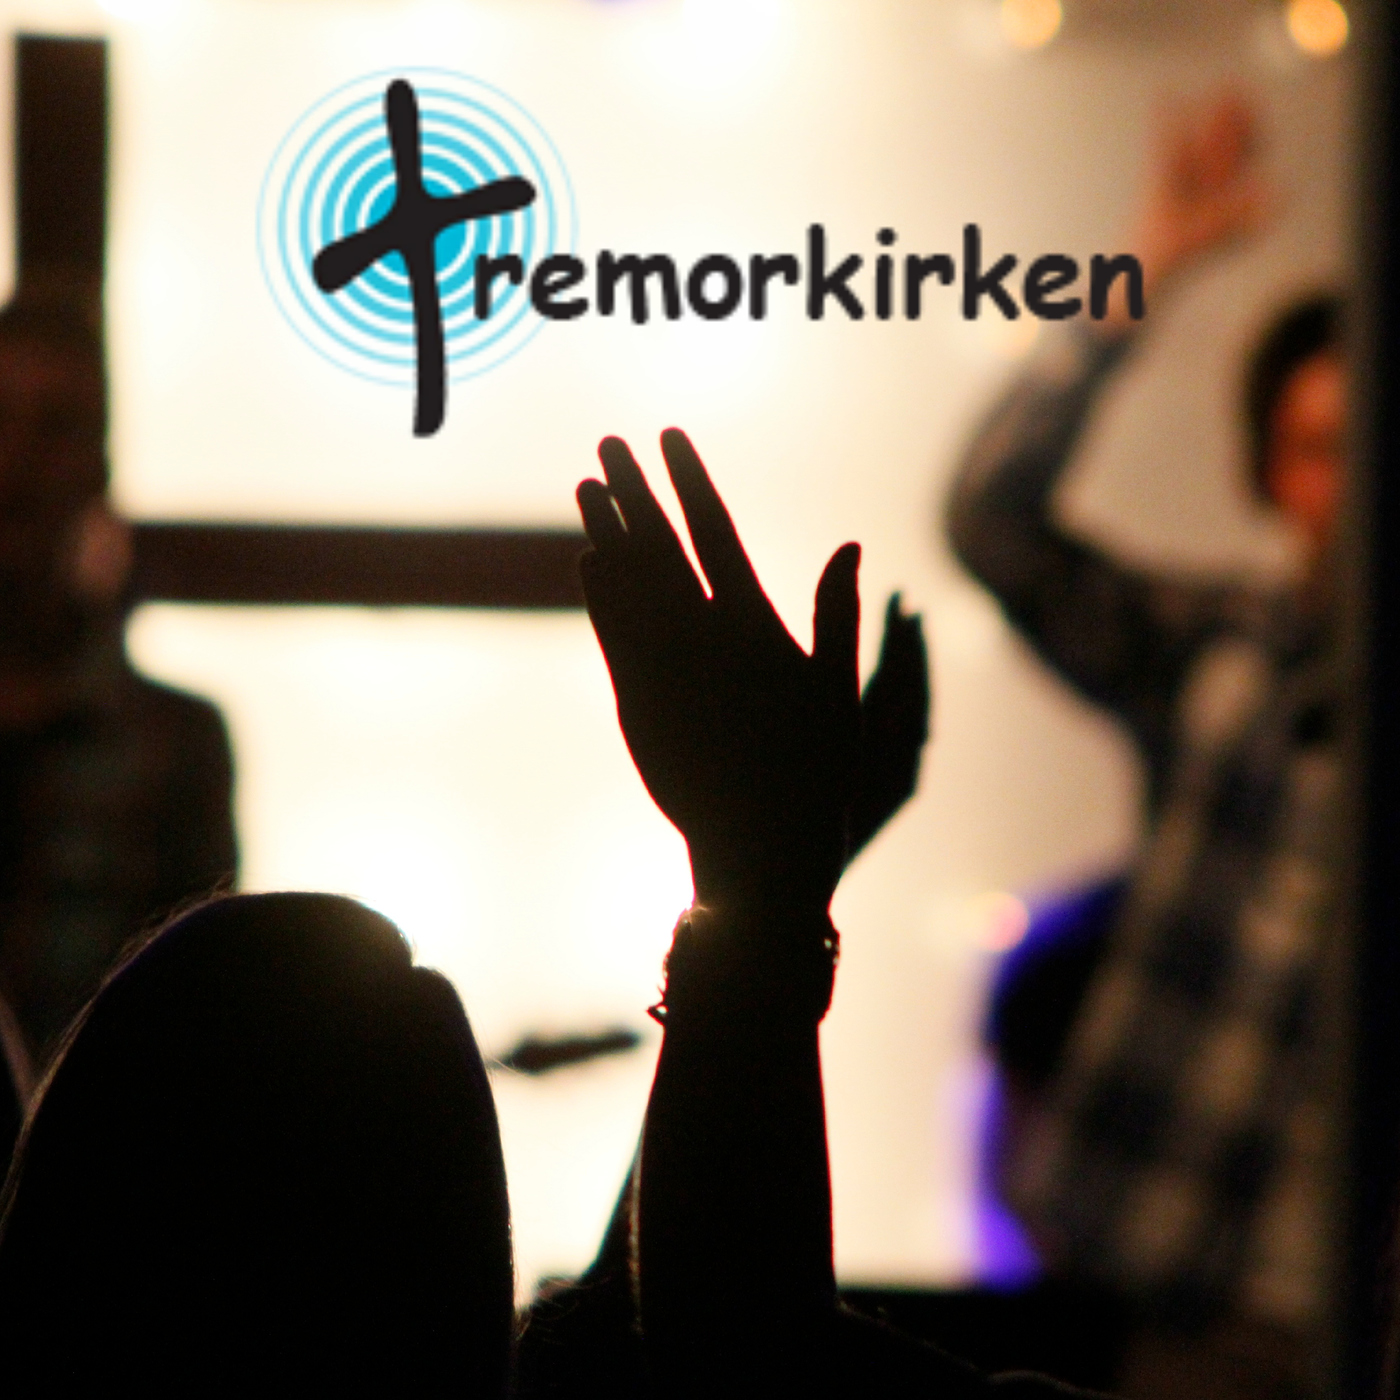 Tremorkirken Podcast